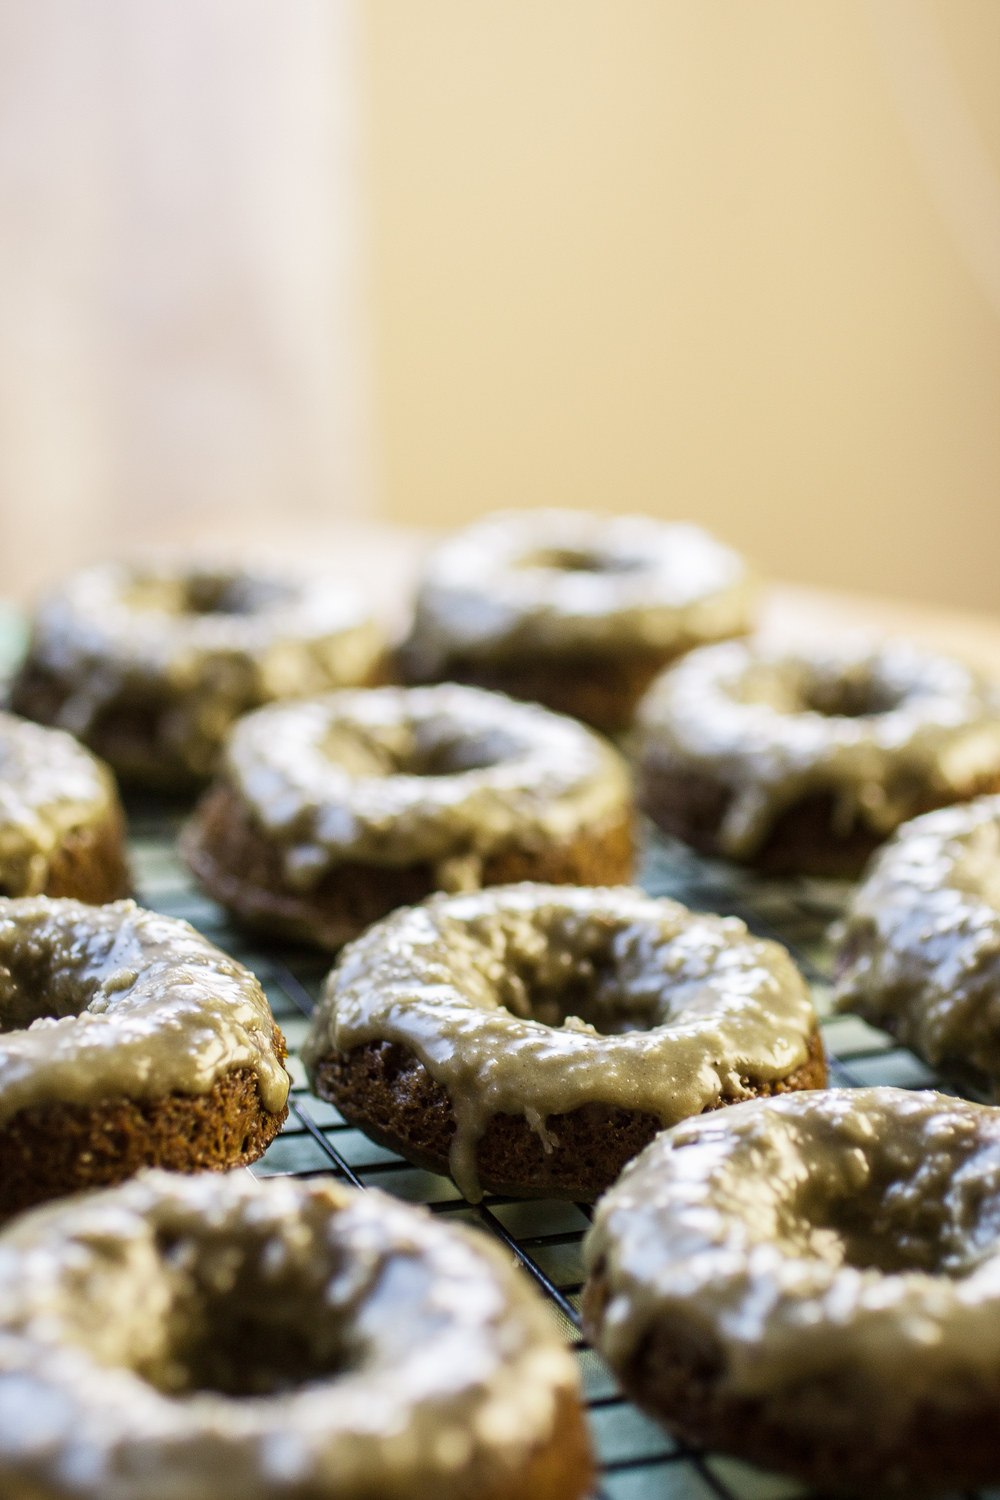 greenteadonuts (10 of 13).jpgProduce On Parade - Green Tea Doughnuts w/ Crunchy Coconut Glaze - Baked doughnuts with powdered green tea mixed right in the batter! Adorned with a sweet and crunchy coconut-nutmeg glaze, these are easy to make and brimming with green tea flavor. A perfect and unique treat for St. Patrick's Days!